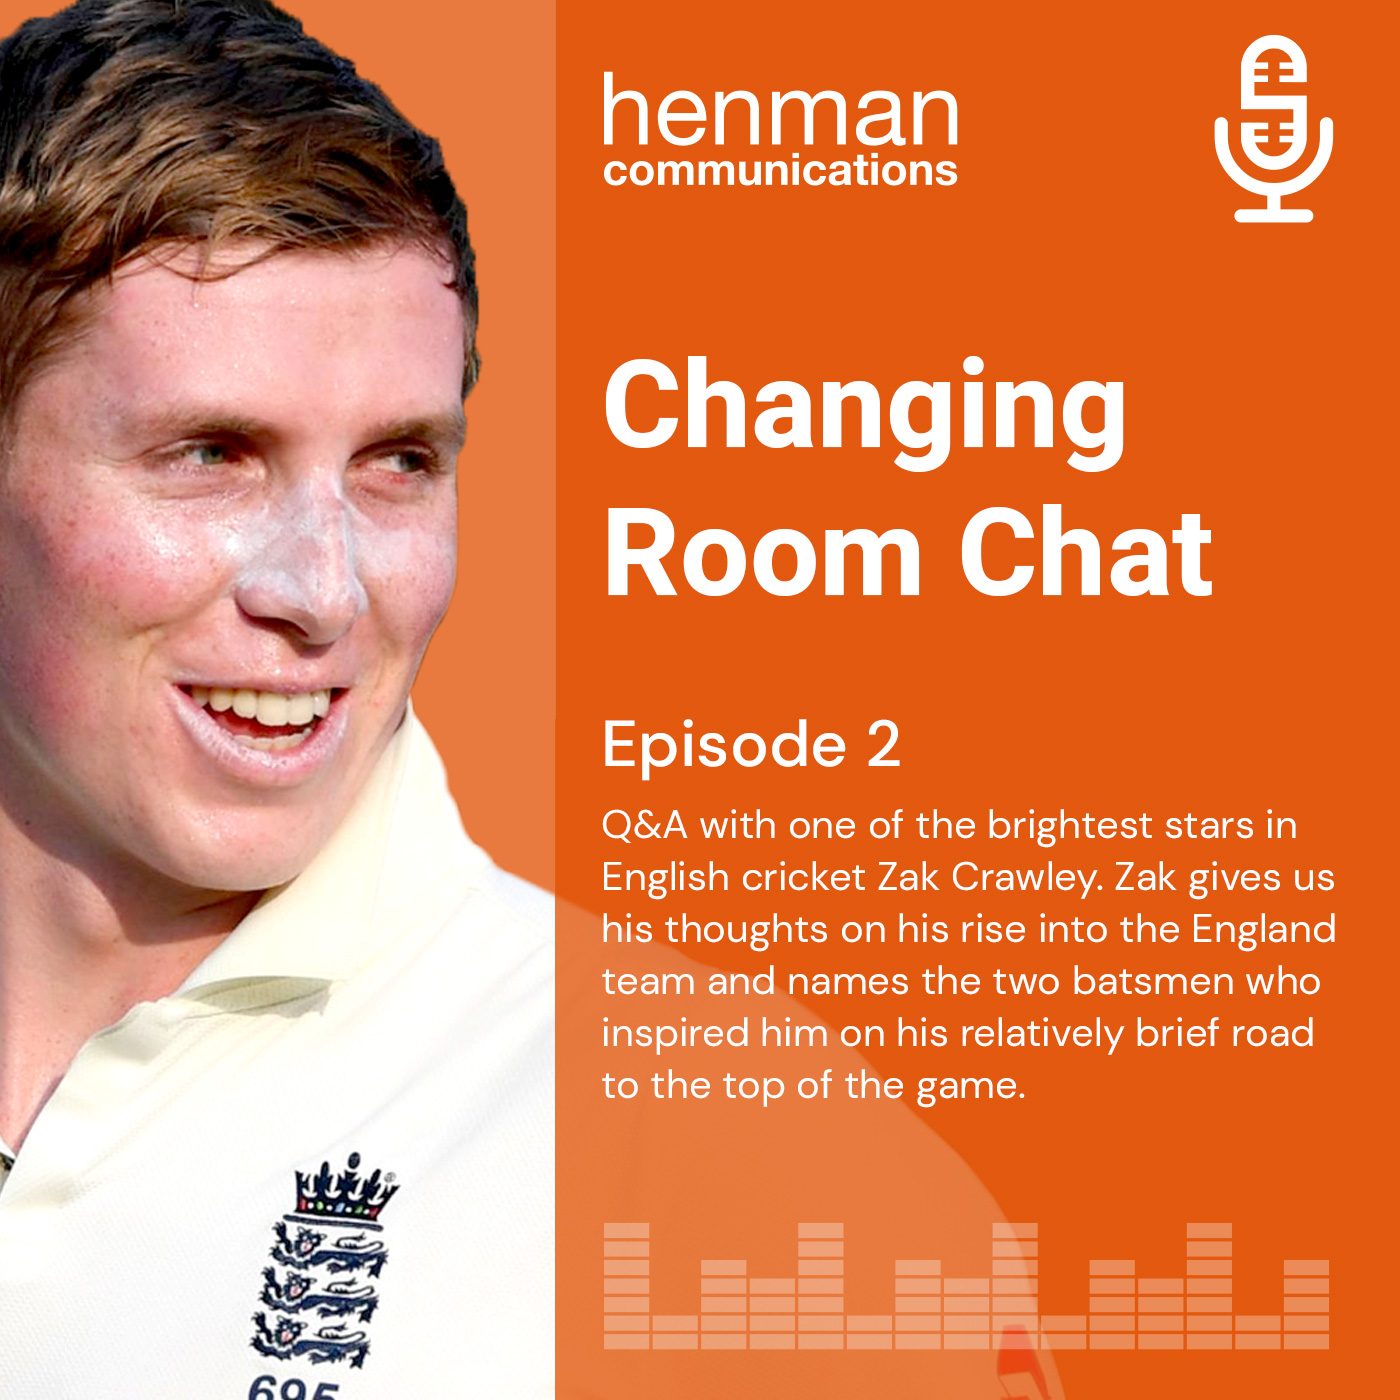 Episode 2: Q&A with one of the brightest stars in English cricket Zak Crawley.